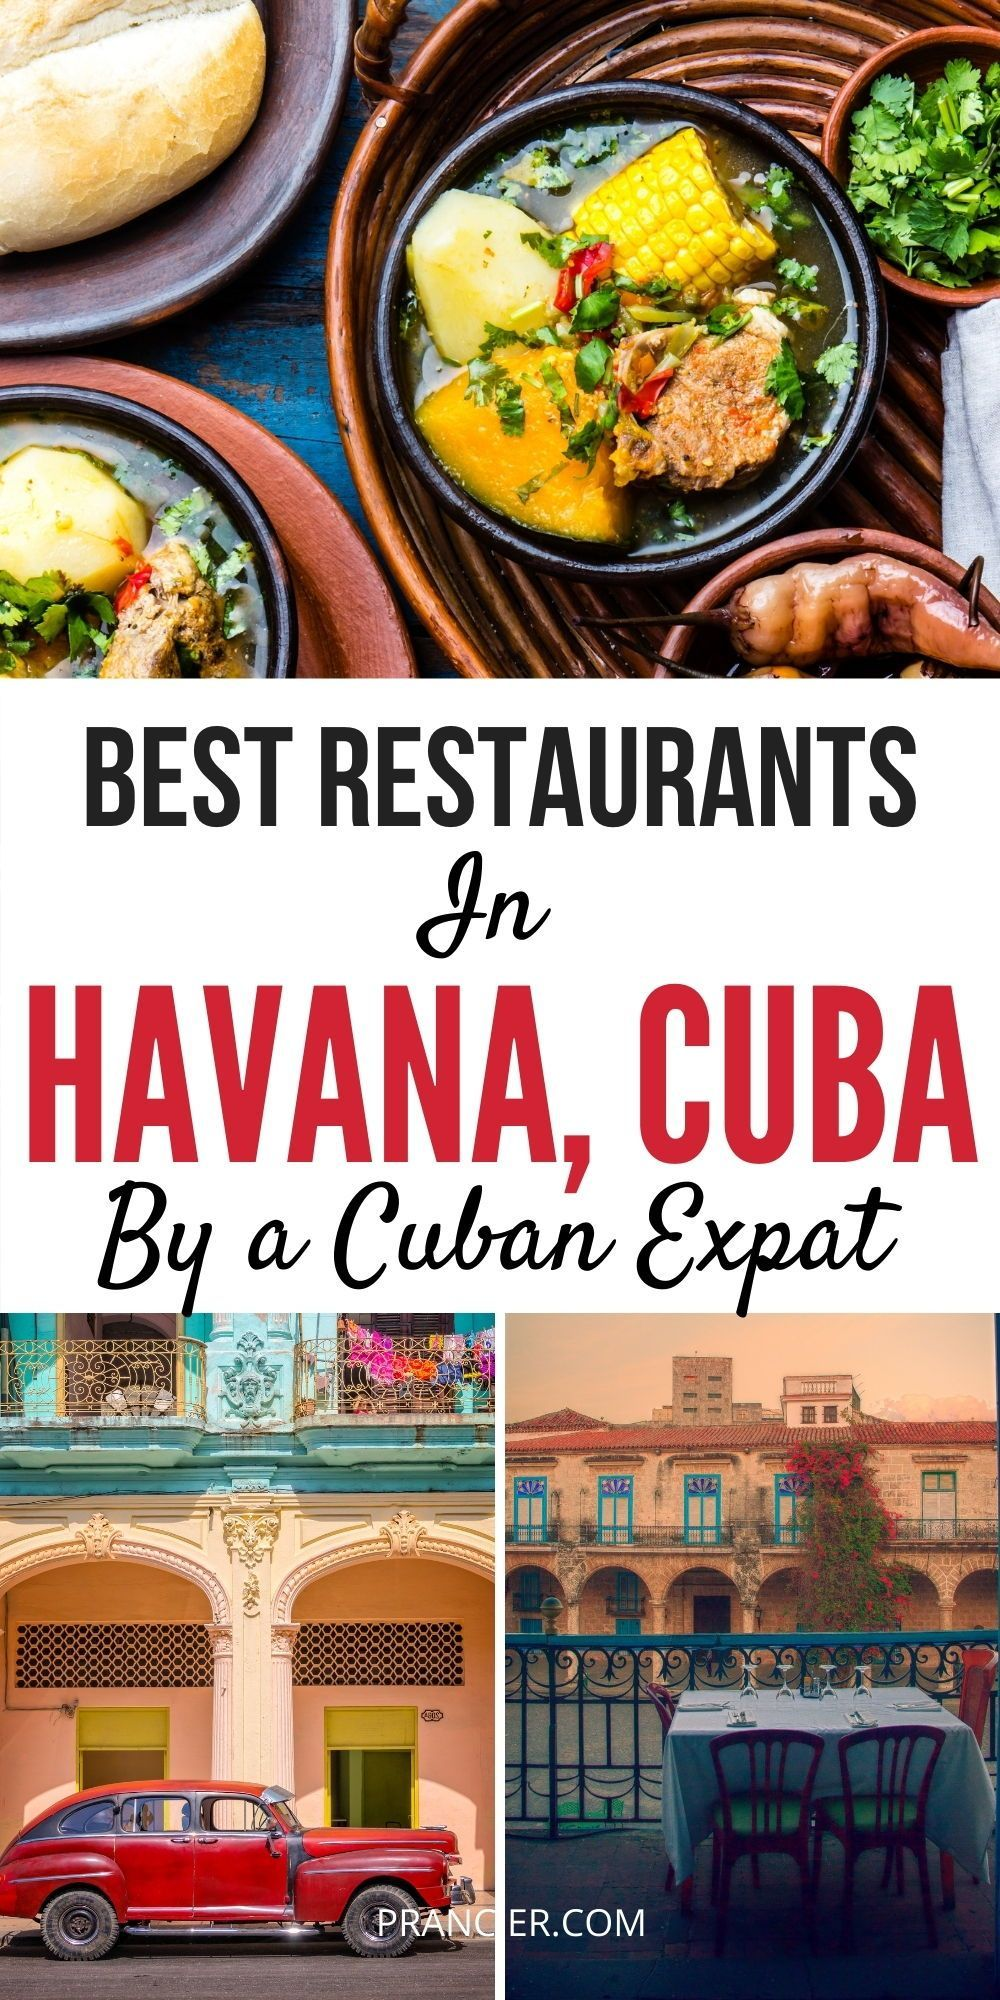 Check out this article for the best food and restaurant in Havana. The Best Things to do in Havana, Cuba at night and the best Havana entertaiment, cultural and restaurant tips and hidden gems. From exploring the best Cuban food in Havana Vieja and taking classic car rides to finding the best rooftops and the secret Cuban spots. #havana #cuba #travel #Caribbean #thingstodo #cuban #cubatravel #havana #barsinhavana #havanacuba #havanafood